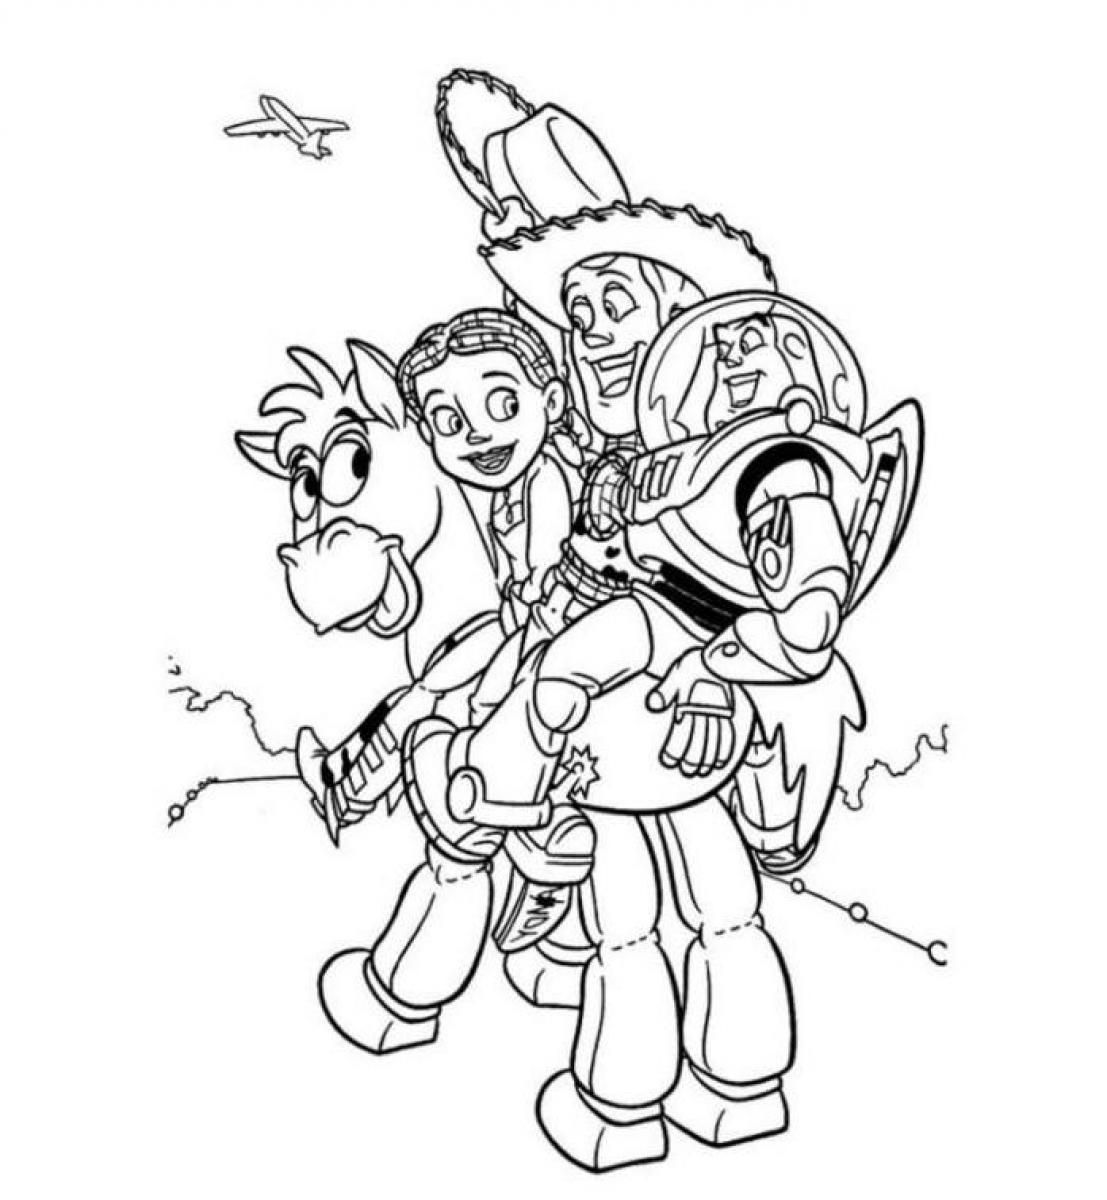 Adult Cute Toy Story 2 Coloring Pages Gallery Images beauty toy story 2 jessie coloring pages az and book uniquecoloringpages gallery images